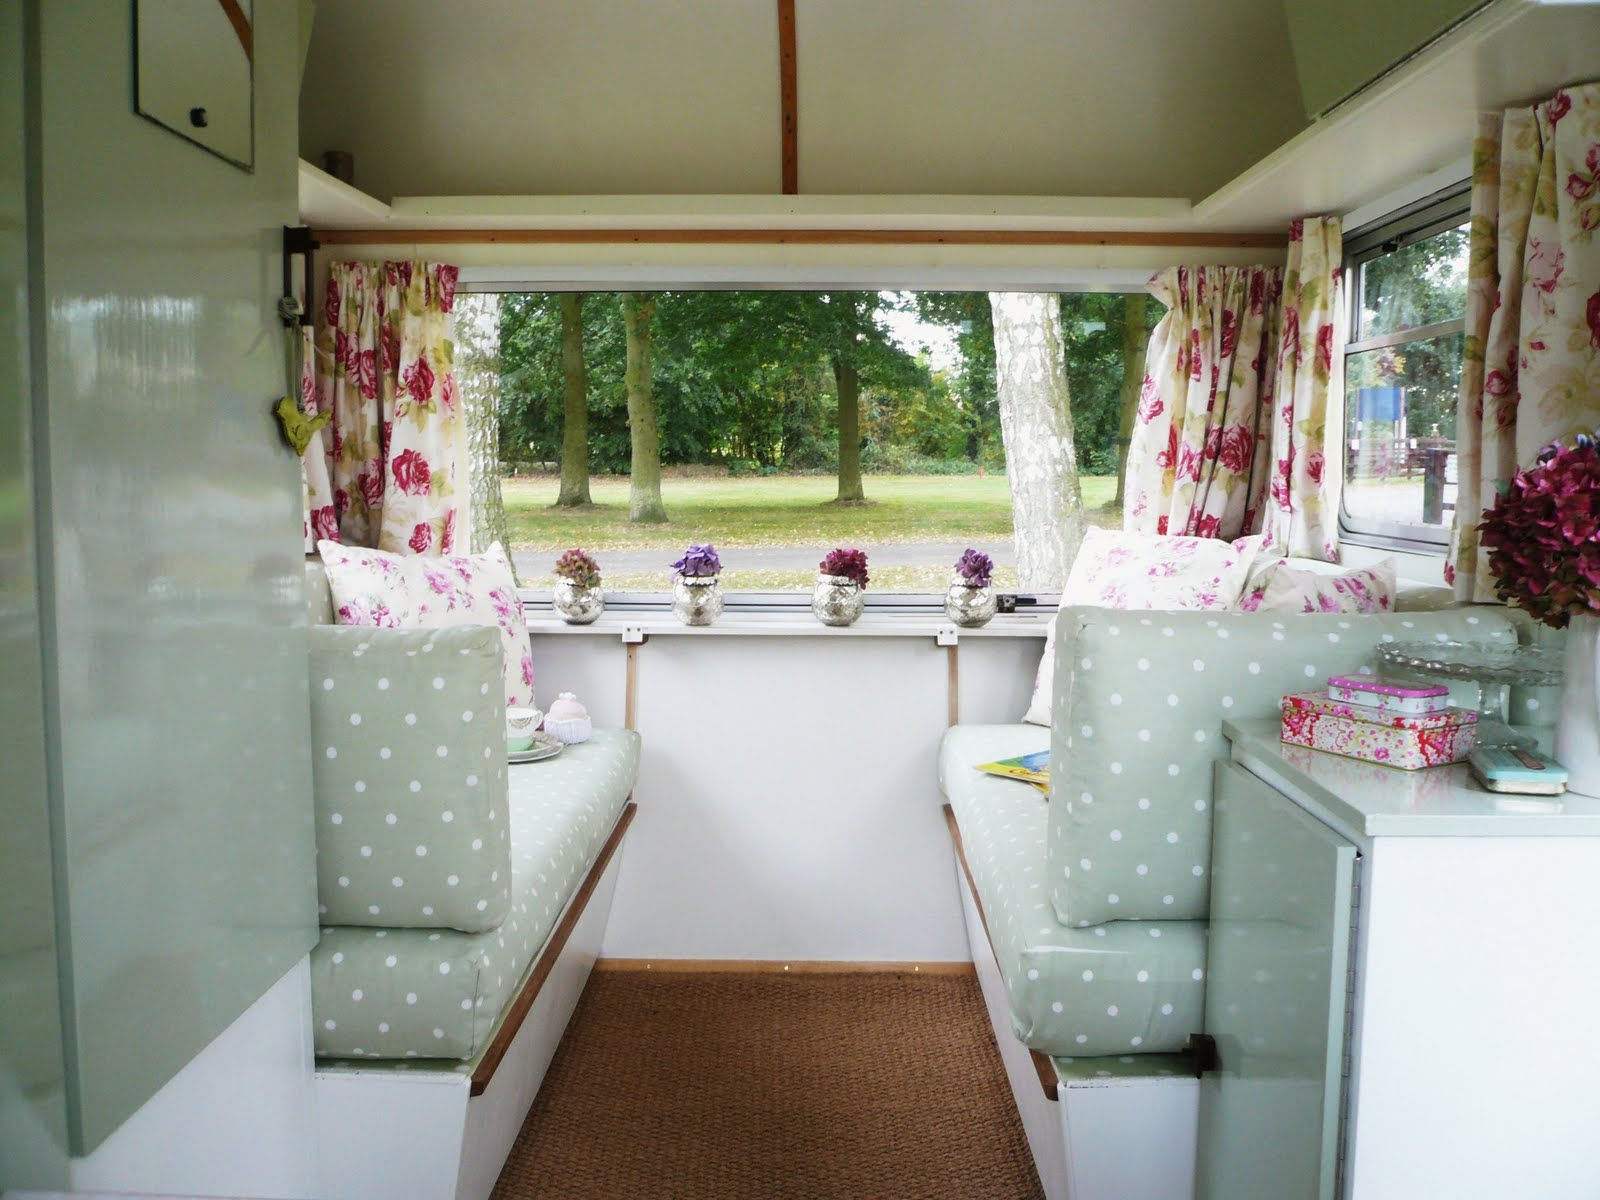 Camping in Cute Campers - My Vintage Party | Squirrelly Minds